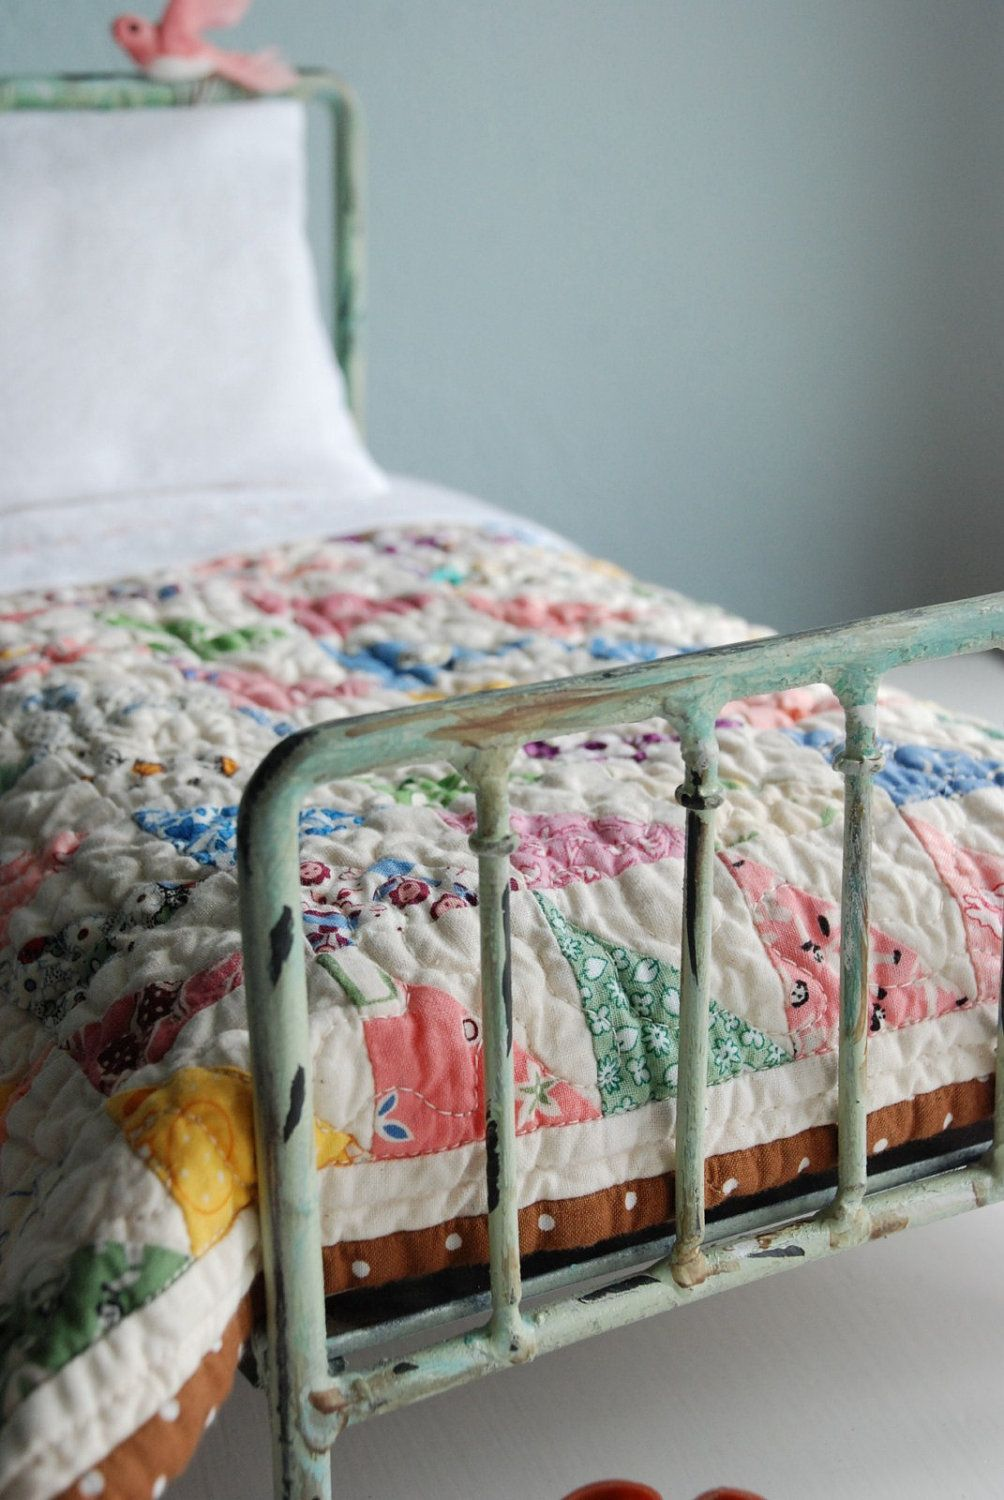 Old bed frame, patchwork quilt, and stuffed bird perched